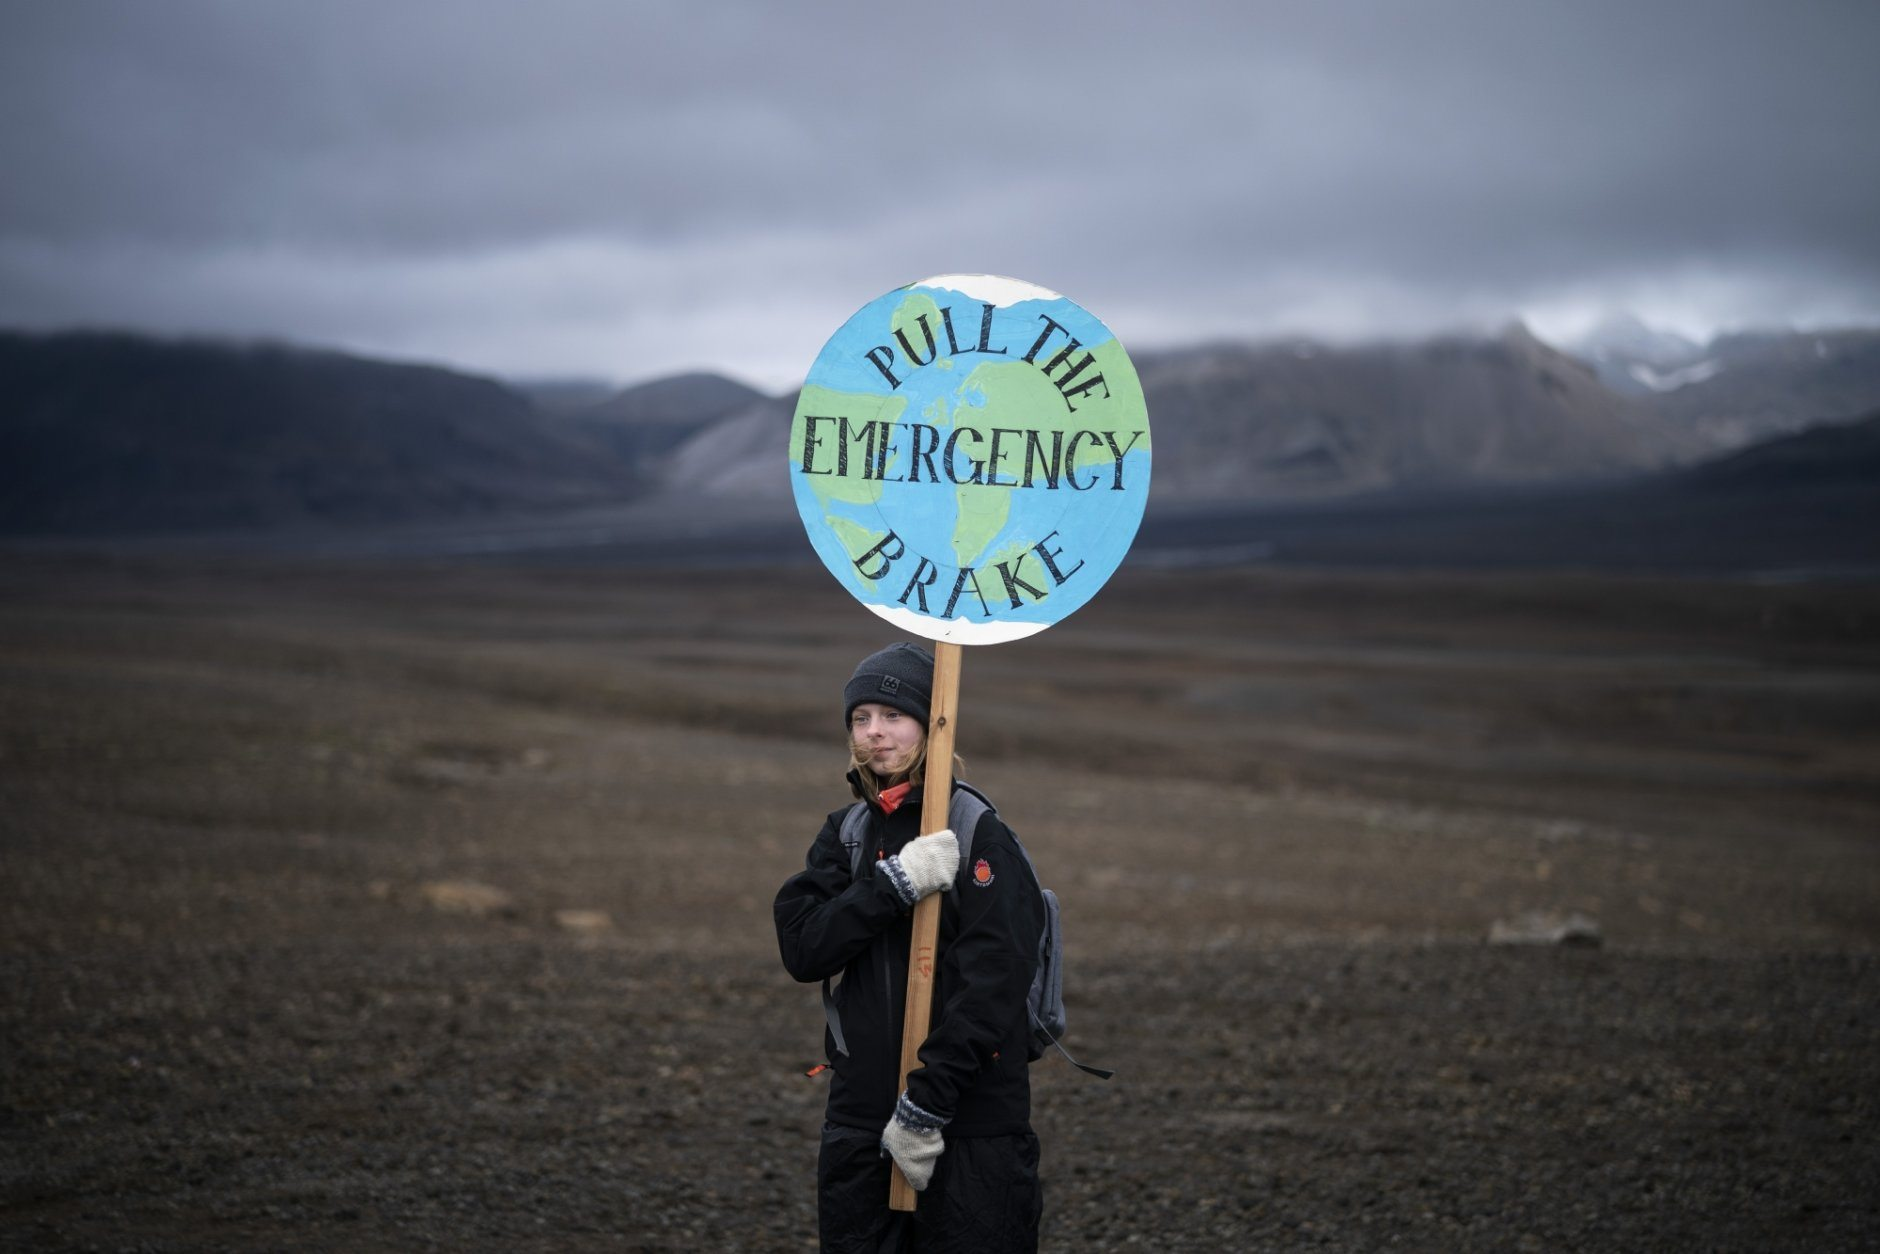 A girl holds a sign that reads 'pull the emergency brake' as she attends a ceremony in the area which once was the Okjokull glacier, in Iceland, Sunday, Aug. 18, 2019. With poetry, moments of silence and political speeches about the urgent need to fight climate change, Icelandic officials, activists and others bade goodbye to the first Icelandic glacier to disappear. (AP Photo/Felipe Dana)